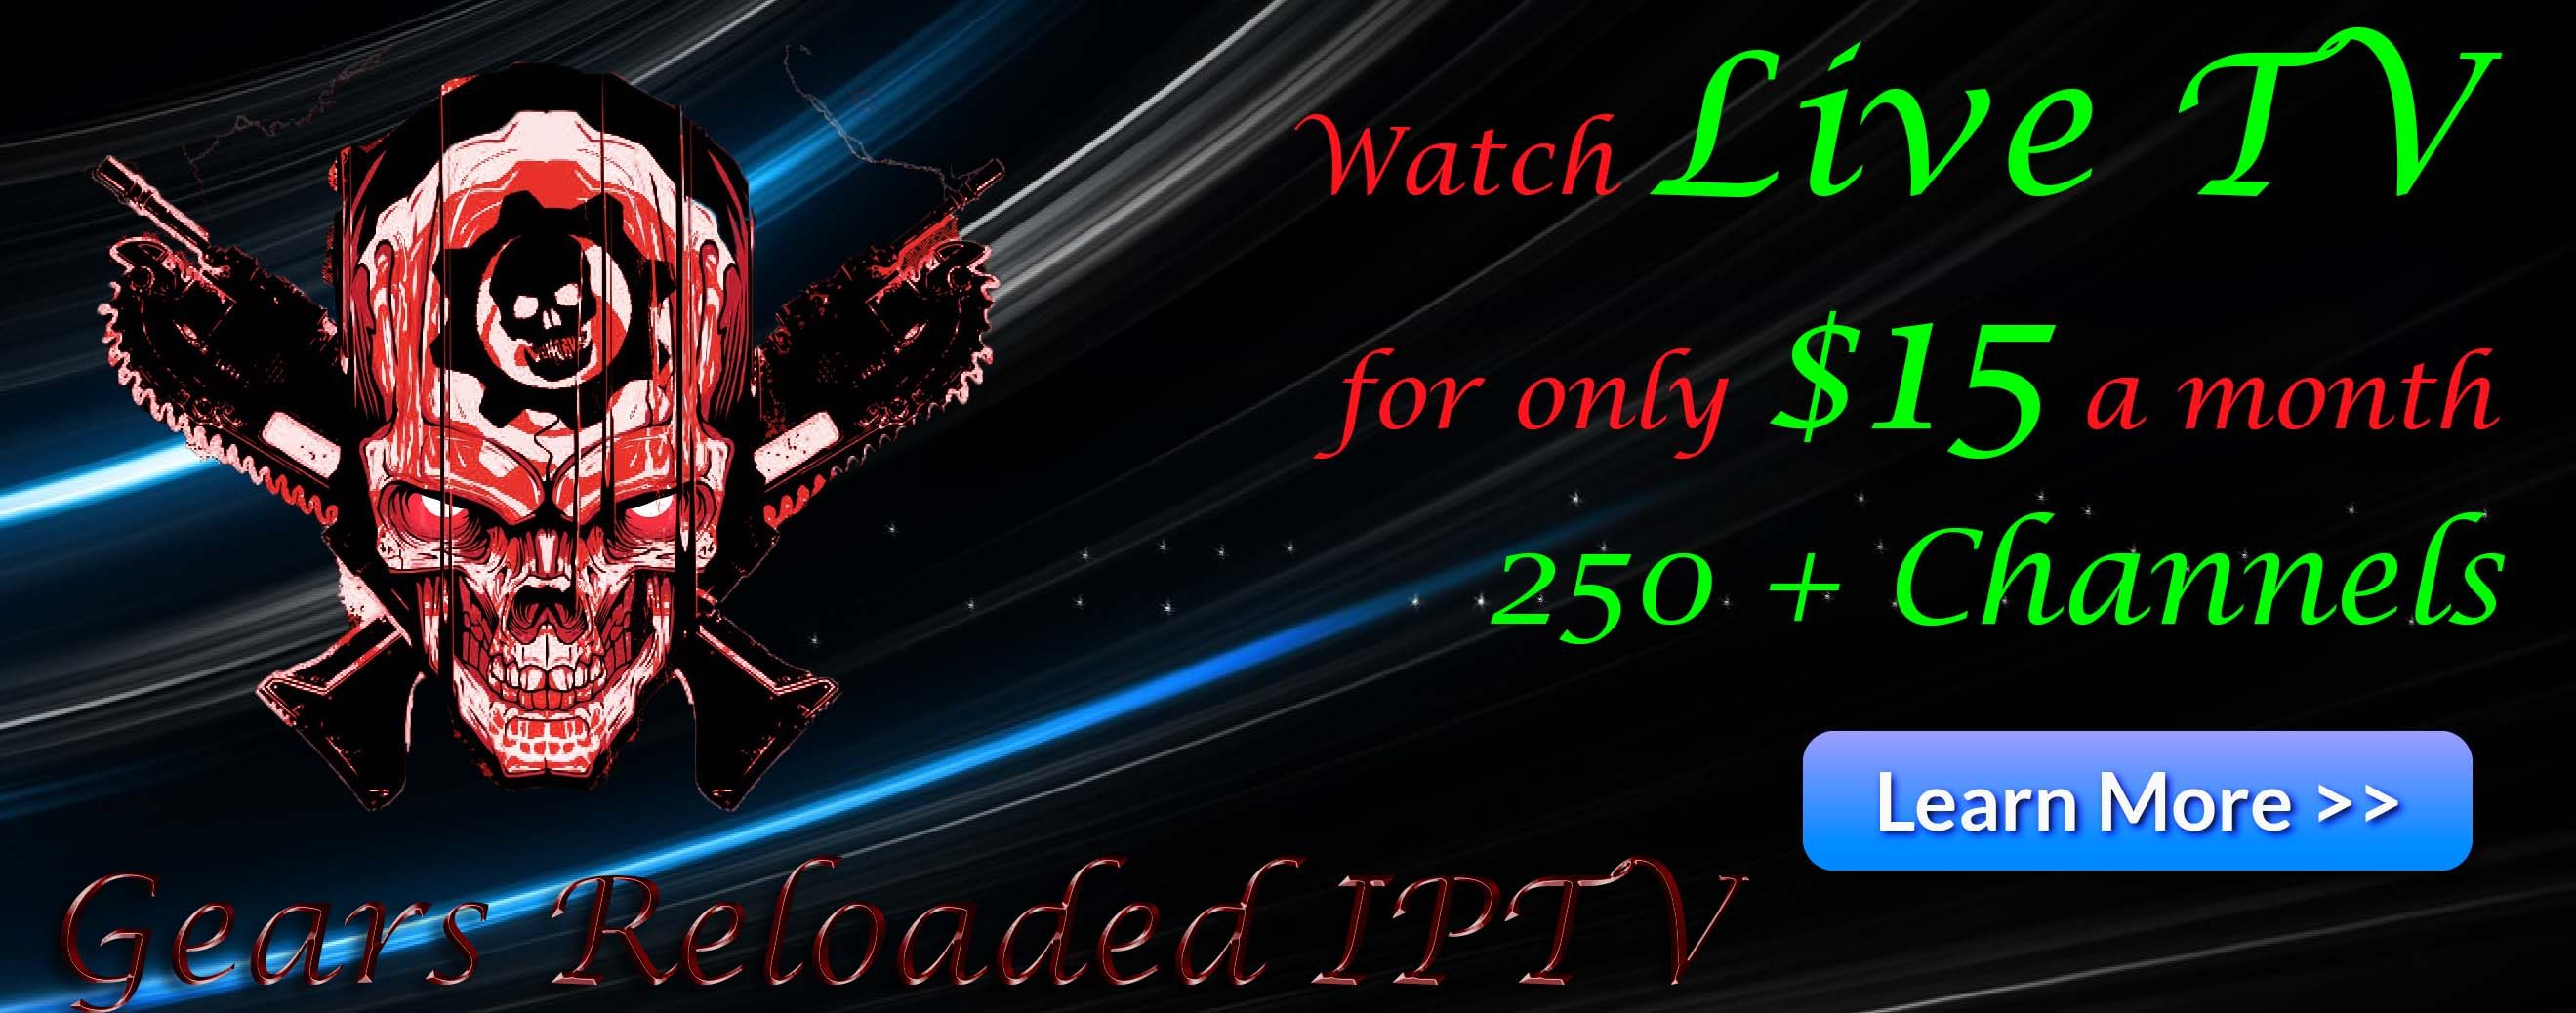 Gears Reloaded IPTV HD APK All Devices Install Guide – Your